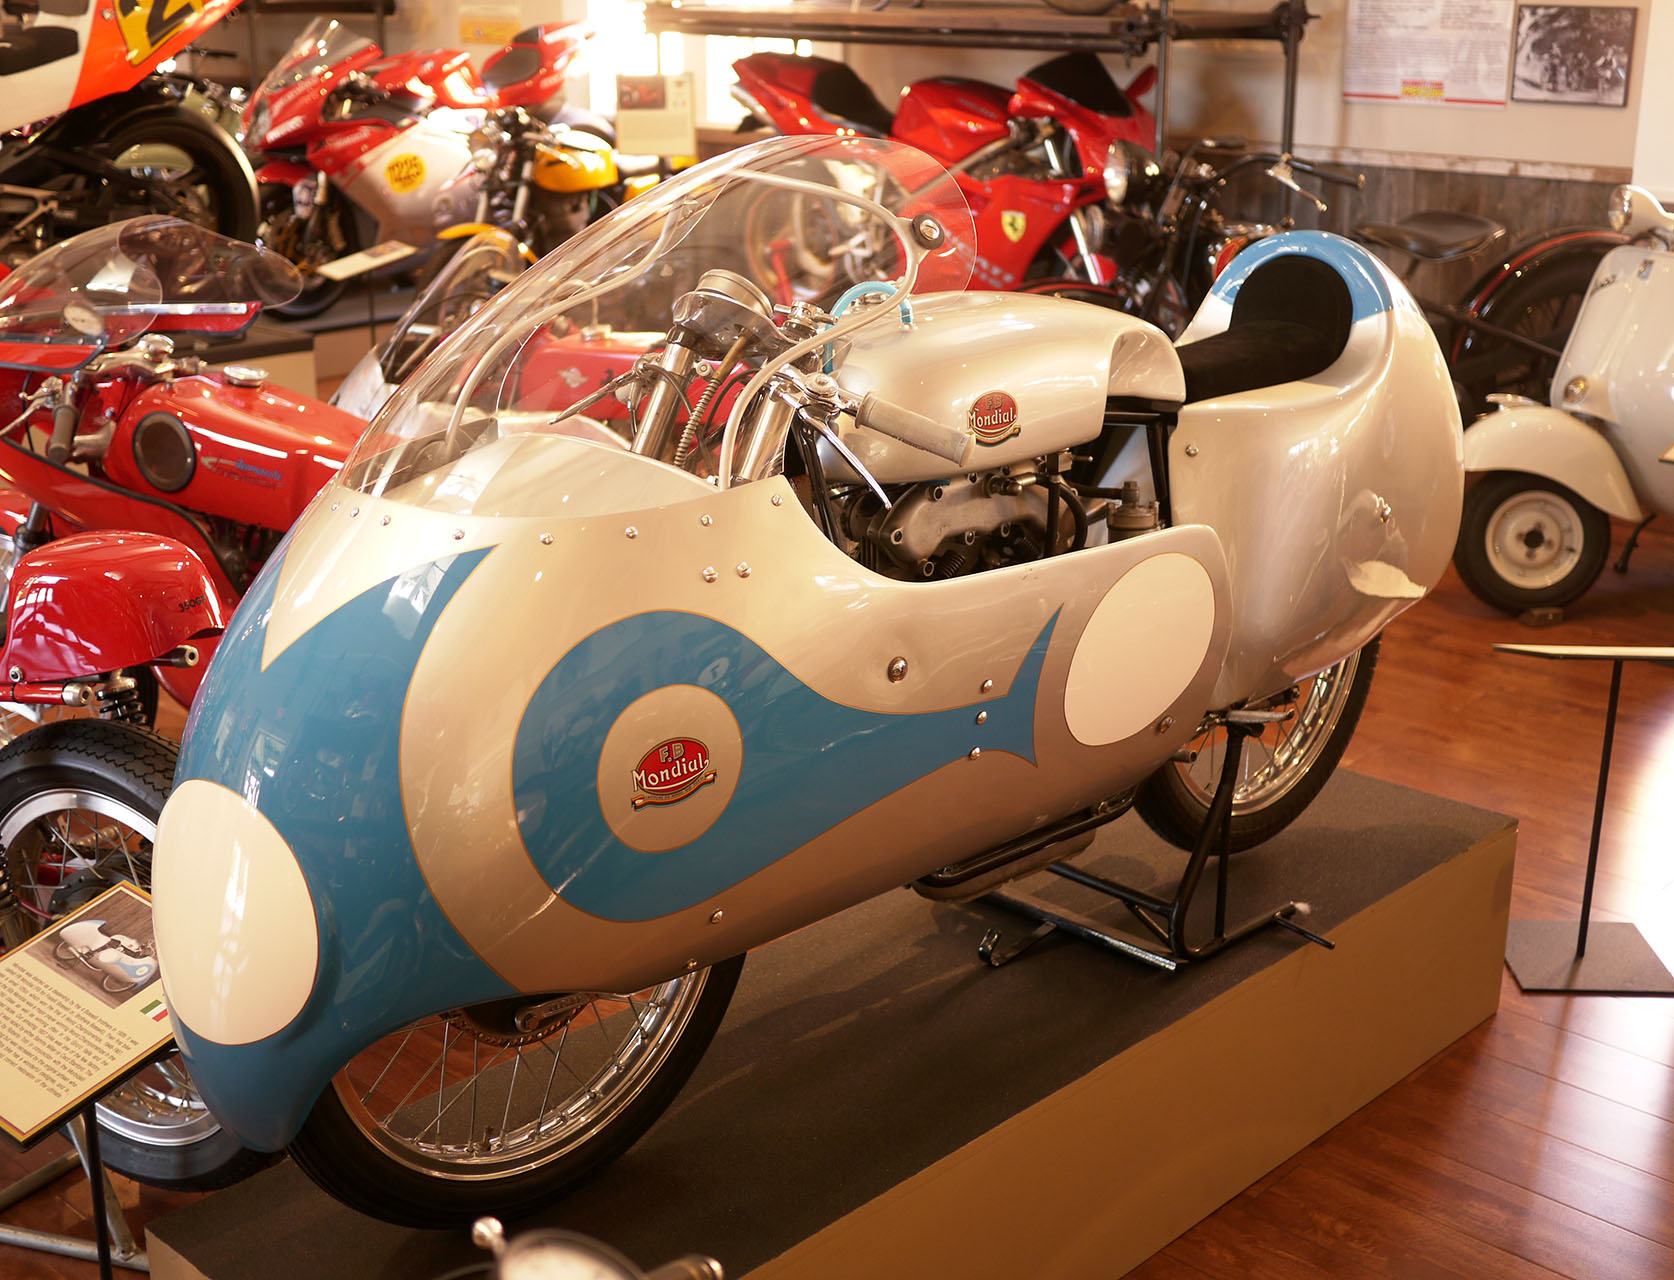 World championship winning 1957 FB Mondial. Star of the main room at Moto Talbott and one of the rarest bikes in the world